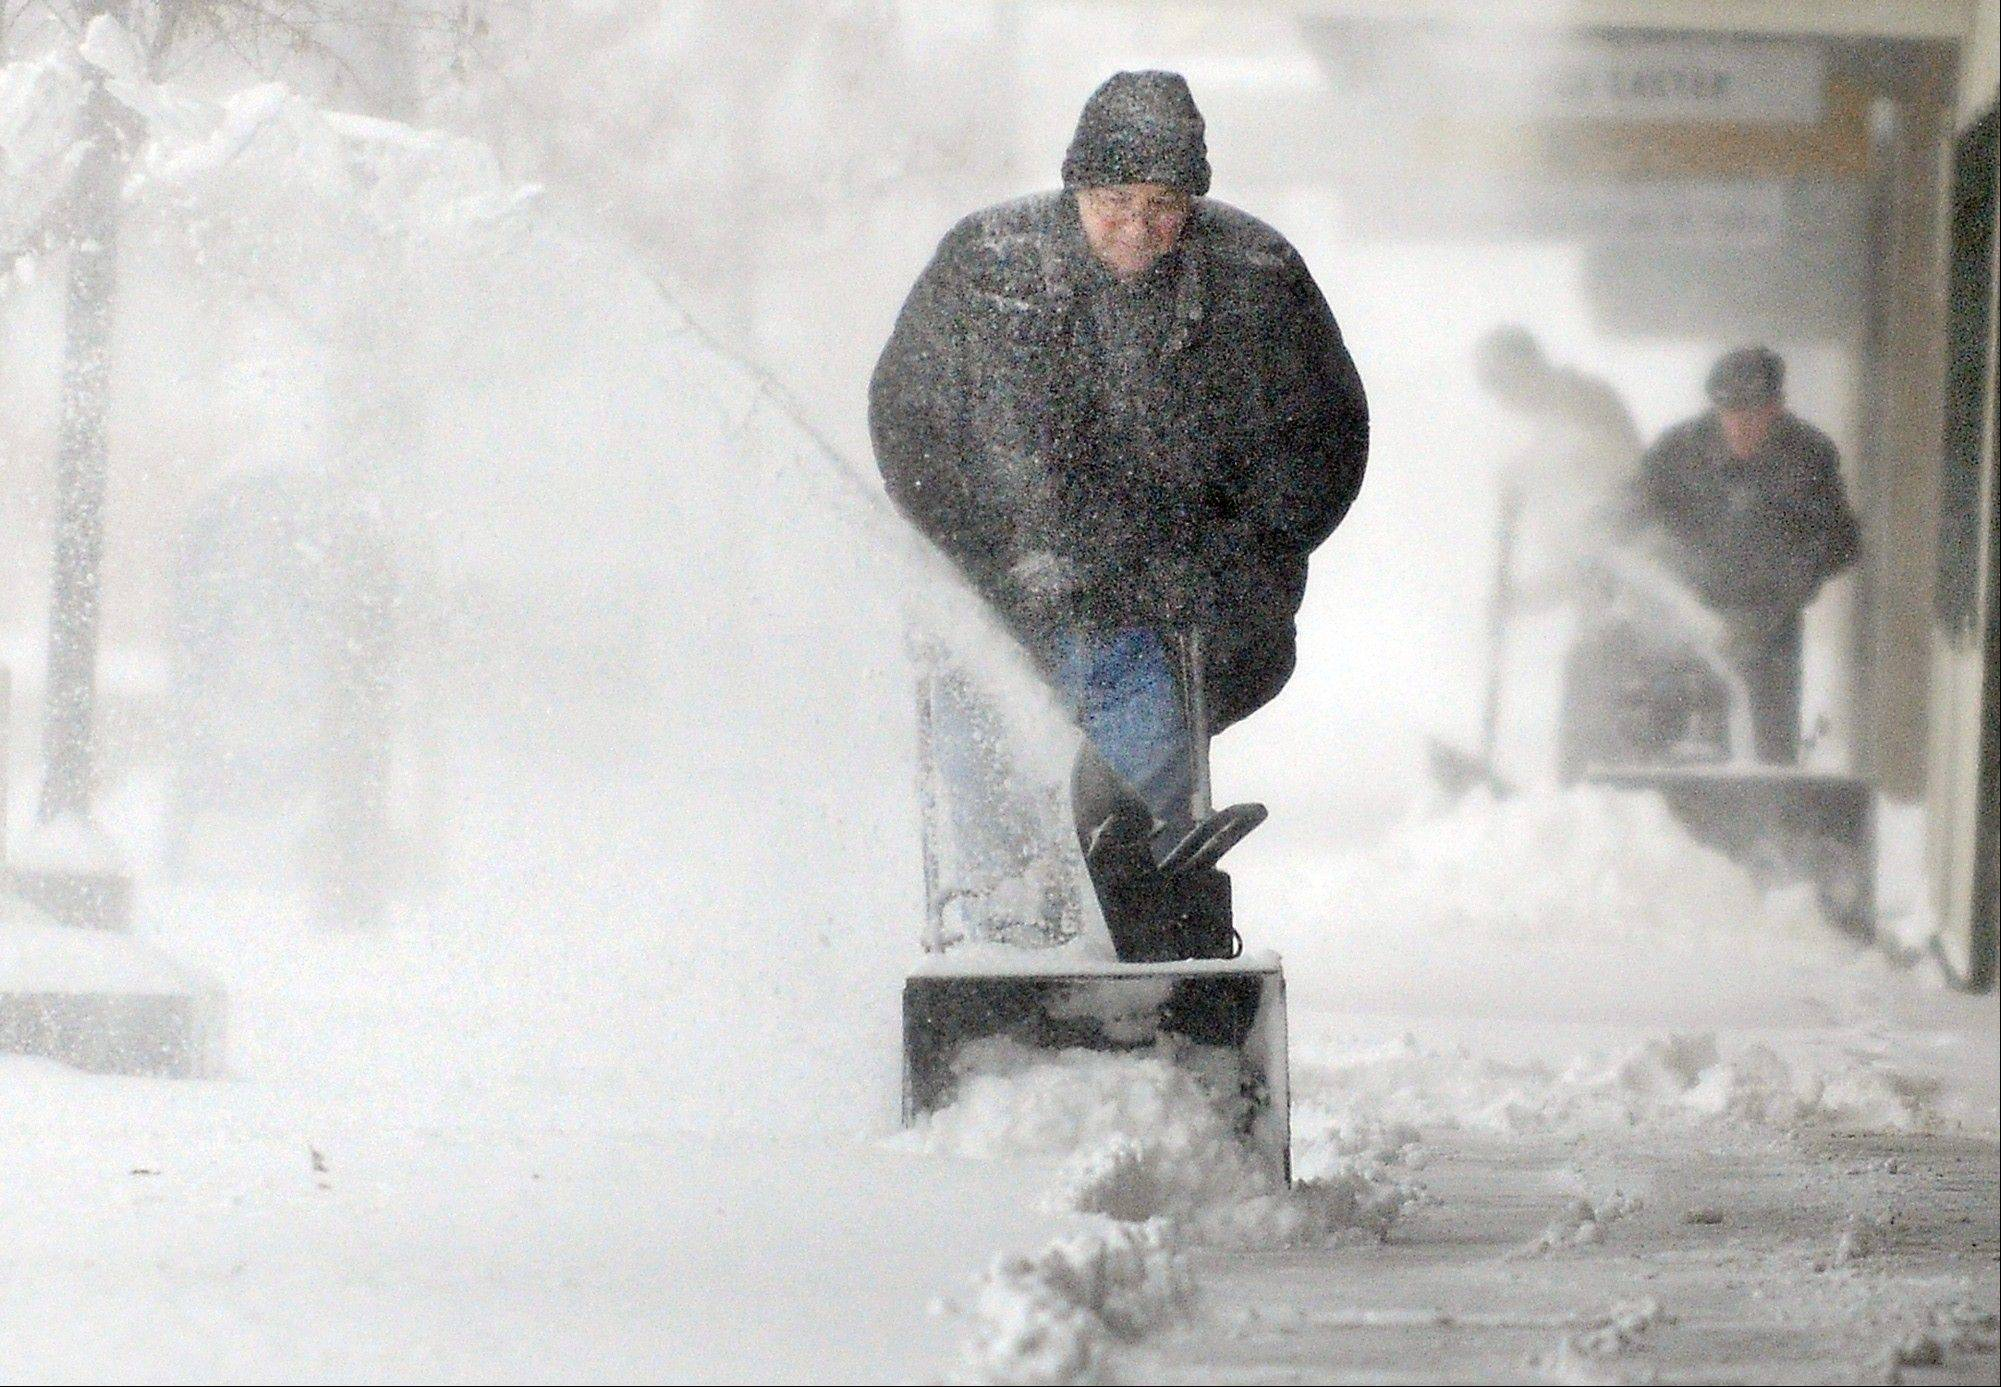 Chuck Carroll, center, uses a snowblower to clear the sidewalk in front of his business in downtown Salina, Kan. Thursday morning Feb. 21, 2013. Carroll said he had cleared the sidewalk Wednesday night and expected to remove snow at least once more Thursday.